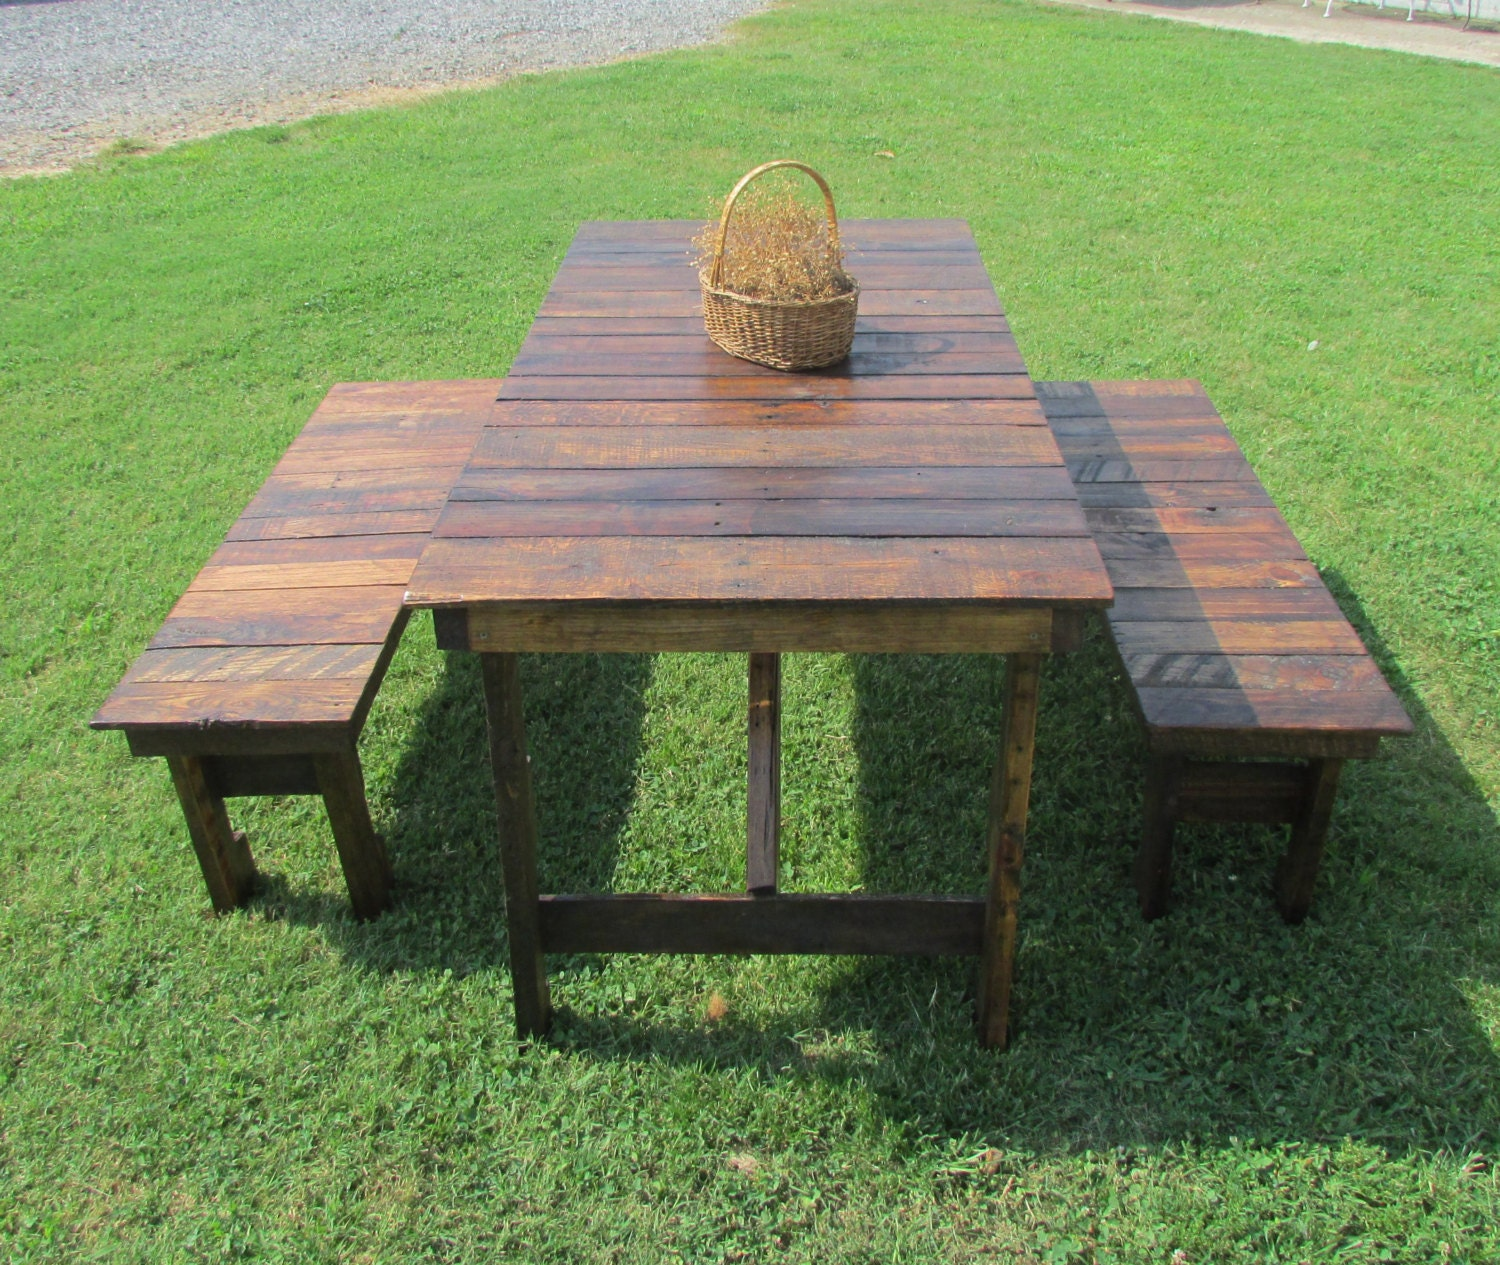 wooden kitchen table with bench kitchen table with benches dining table uamp 2bench set reclaimed wood kitchen table patio table picnic table porch table rustic table barn wood farmhouse